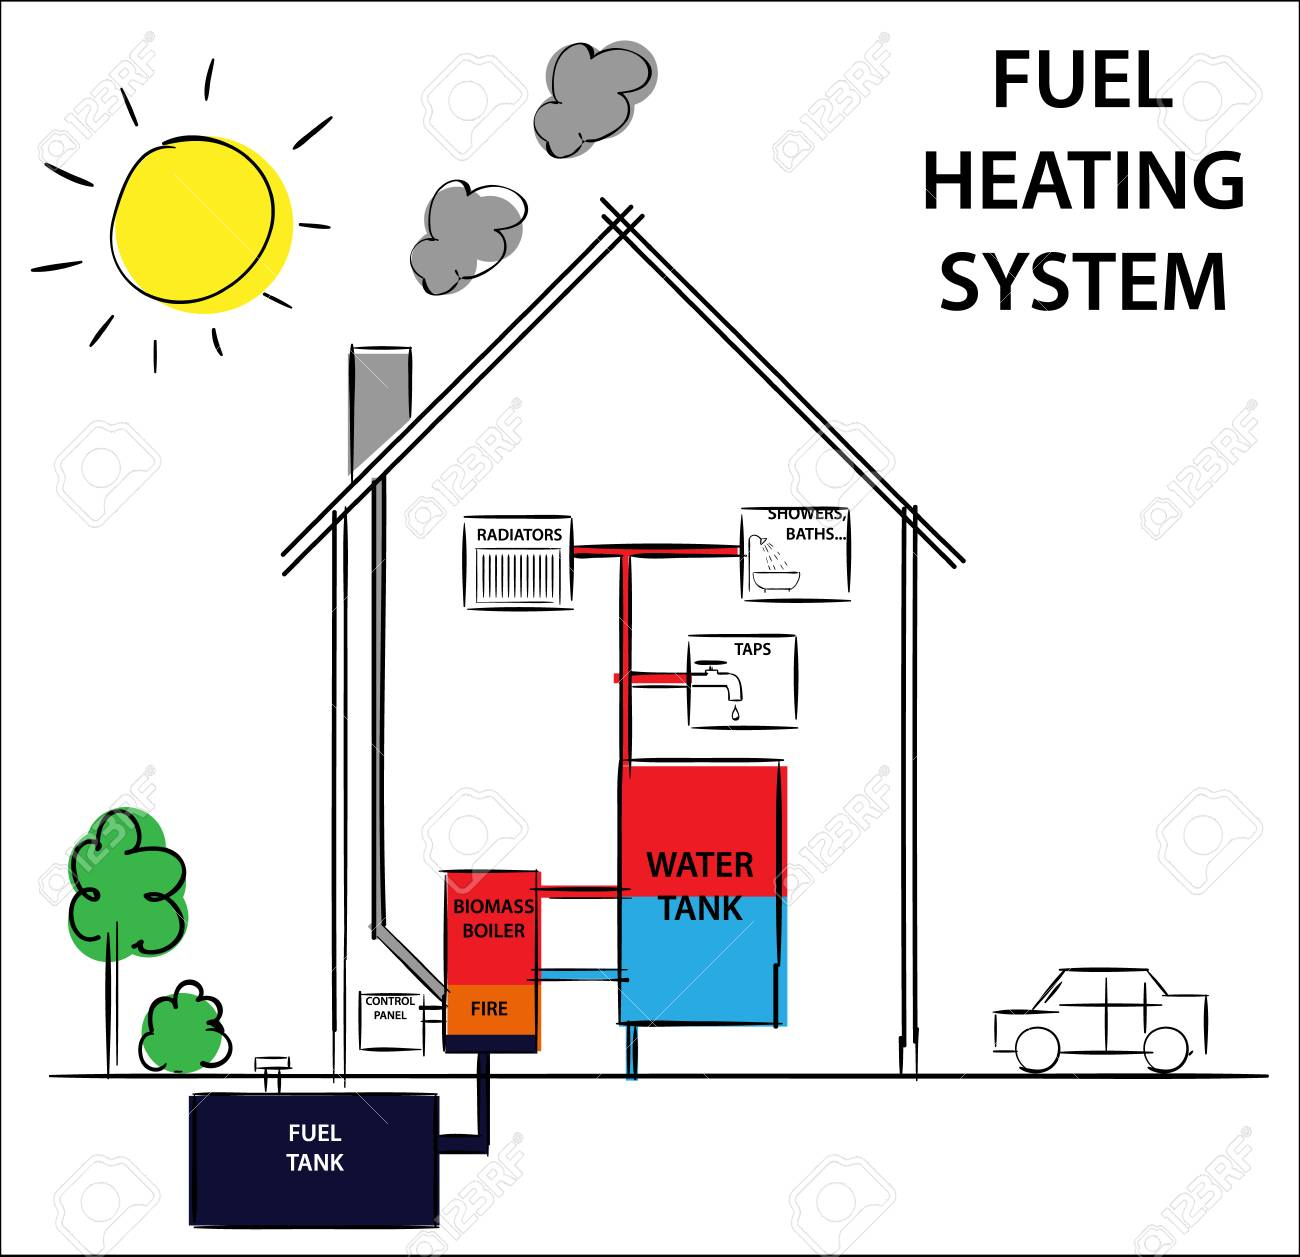 hight resolution of gas or fuel home heating and cooling system diagram drawing illustration stock vector